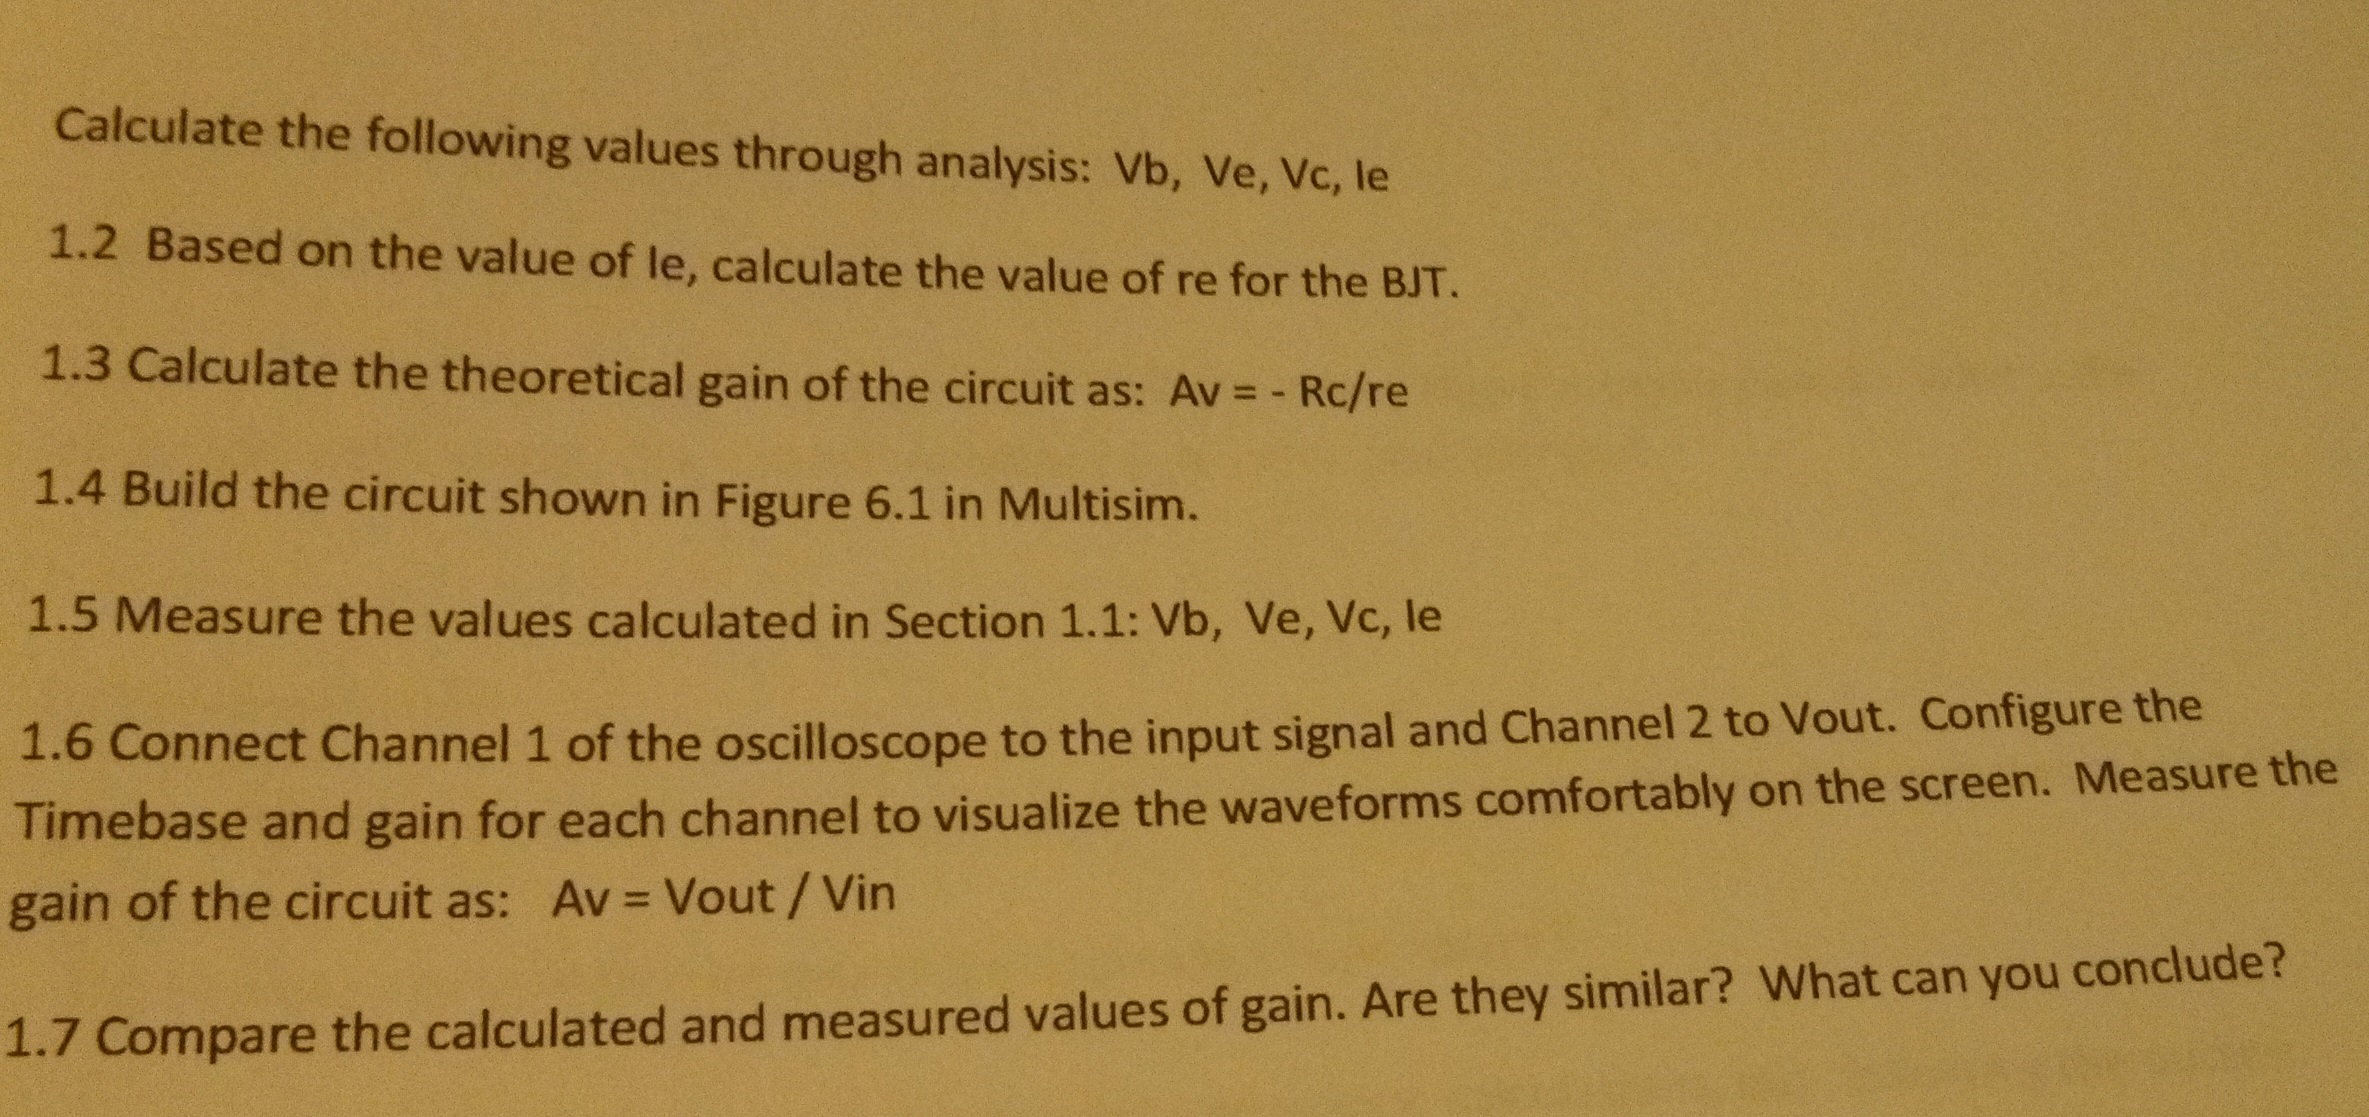 Calculate the following values through analysis: